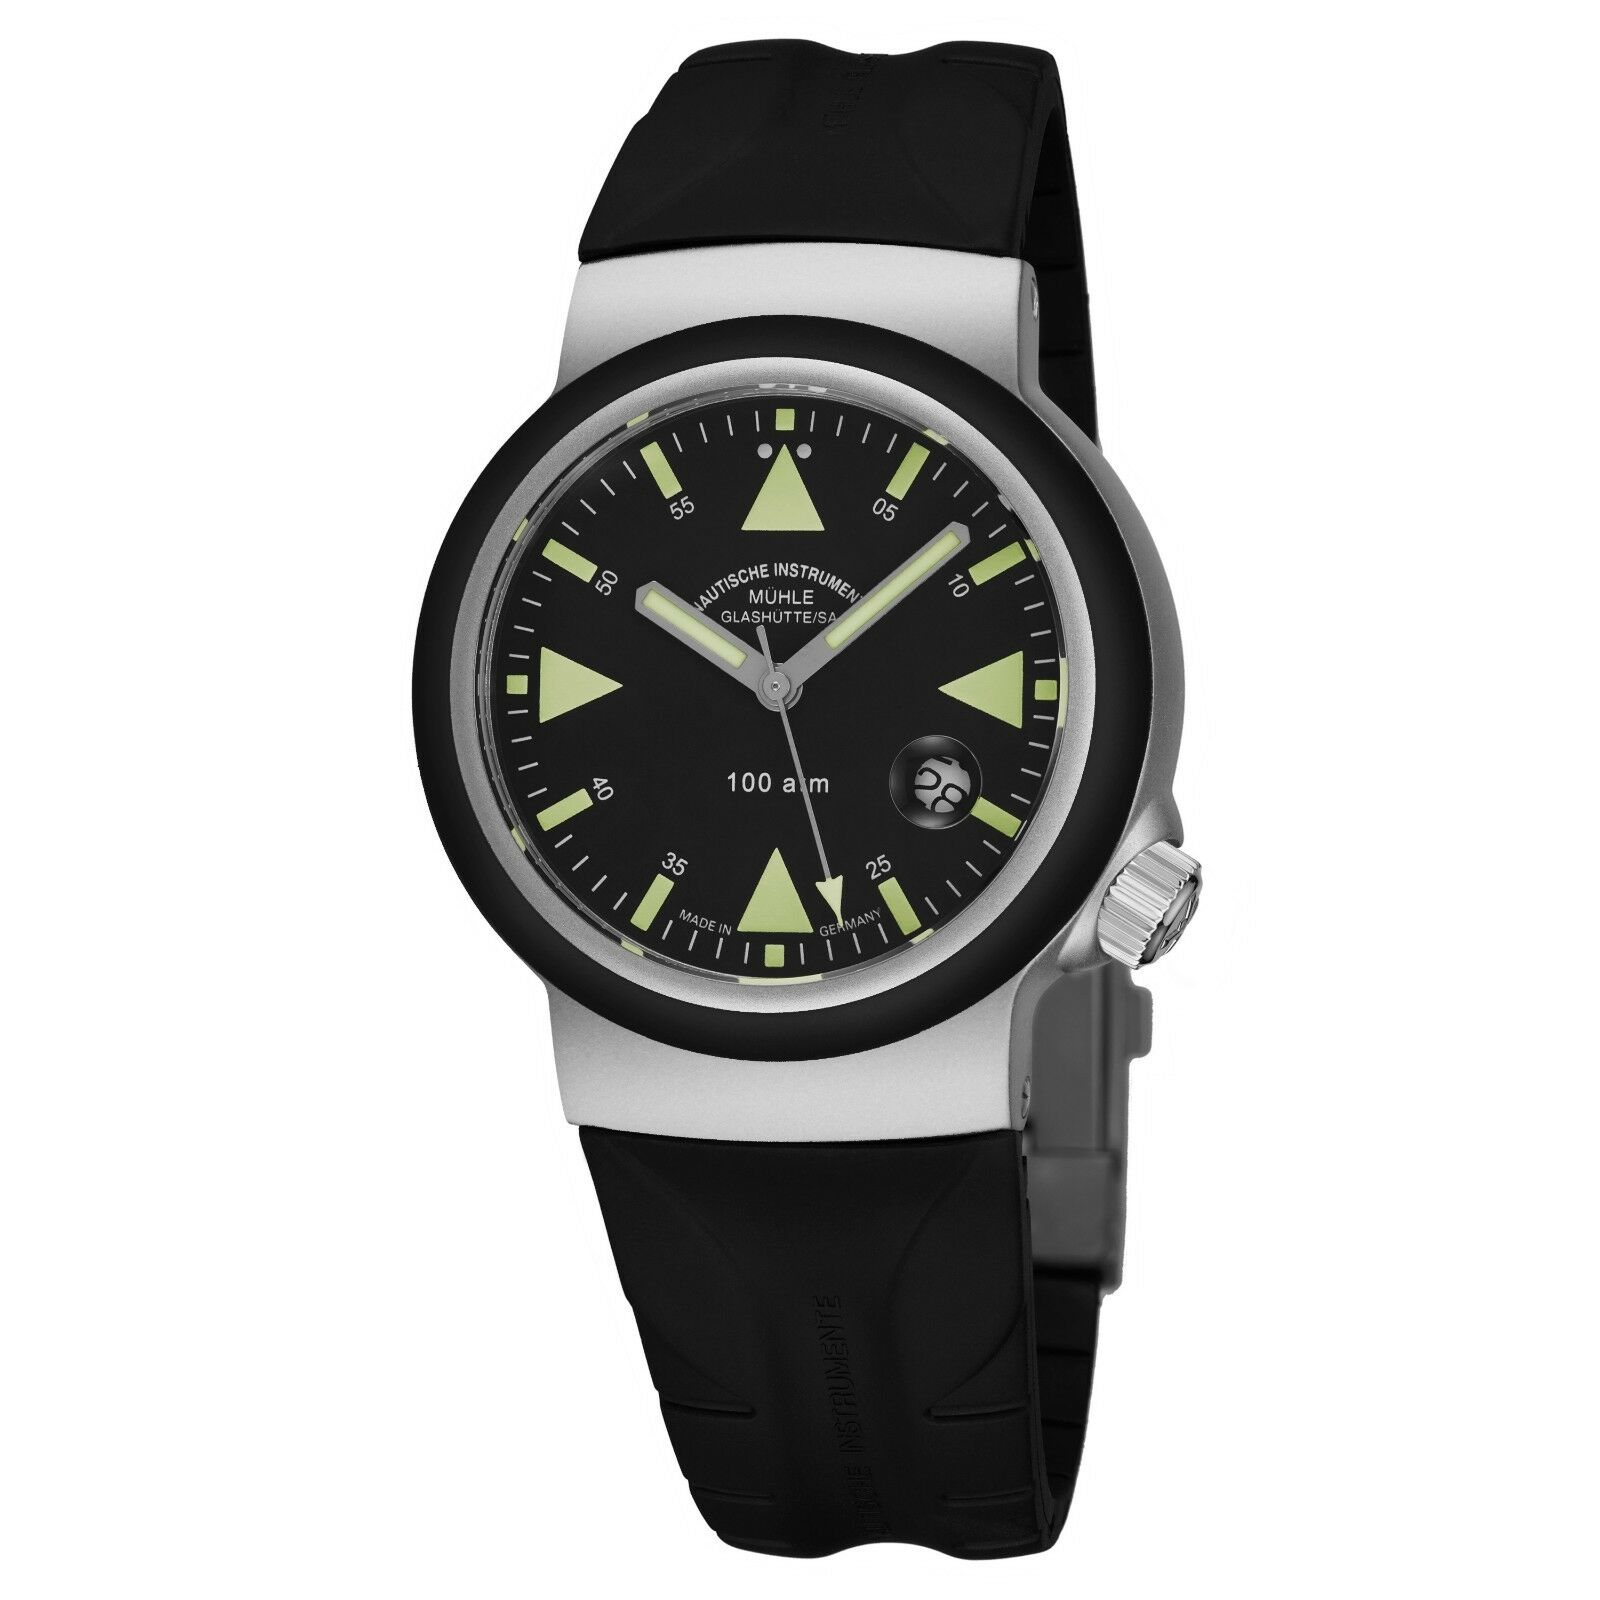 Mühle Glashutte Men's S.A.R. Rescue Timer Strap Automatic Date Watch M1-41-03-KB - watch picture 1